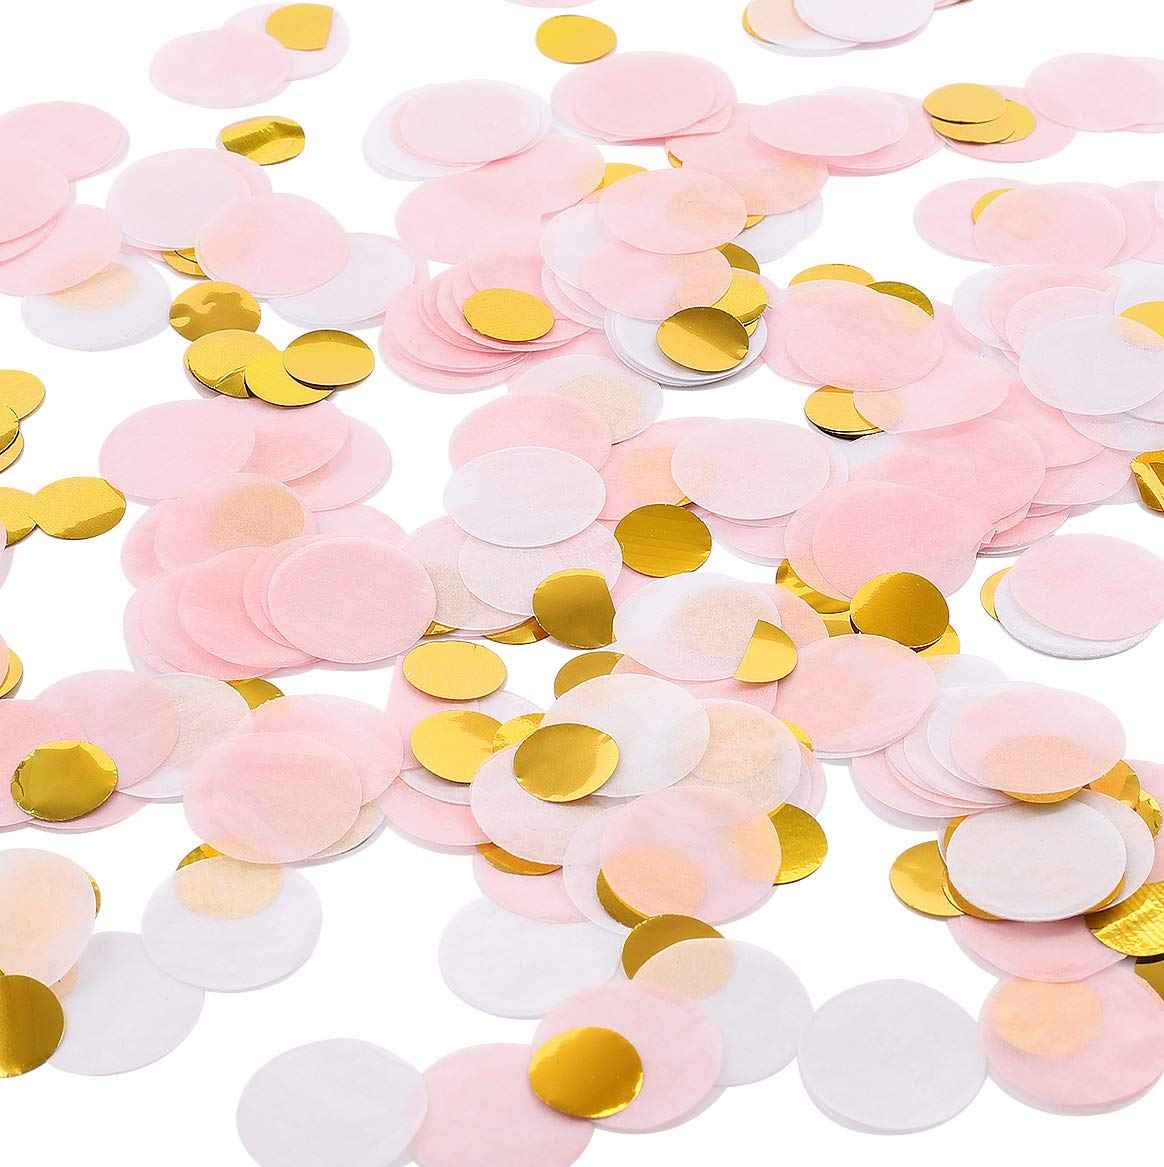 Whaline Round Tissue Confetti 6000 Pcs Paper Table Wedding Confetti Dots for Wedding,Birthday Party,Baby Shower,Valentine's Day and Balloon Decorations,1 Inch (Pink,White, Gold)